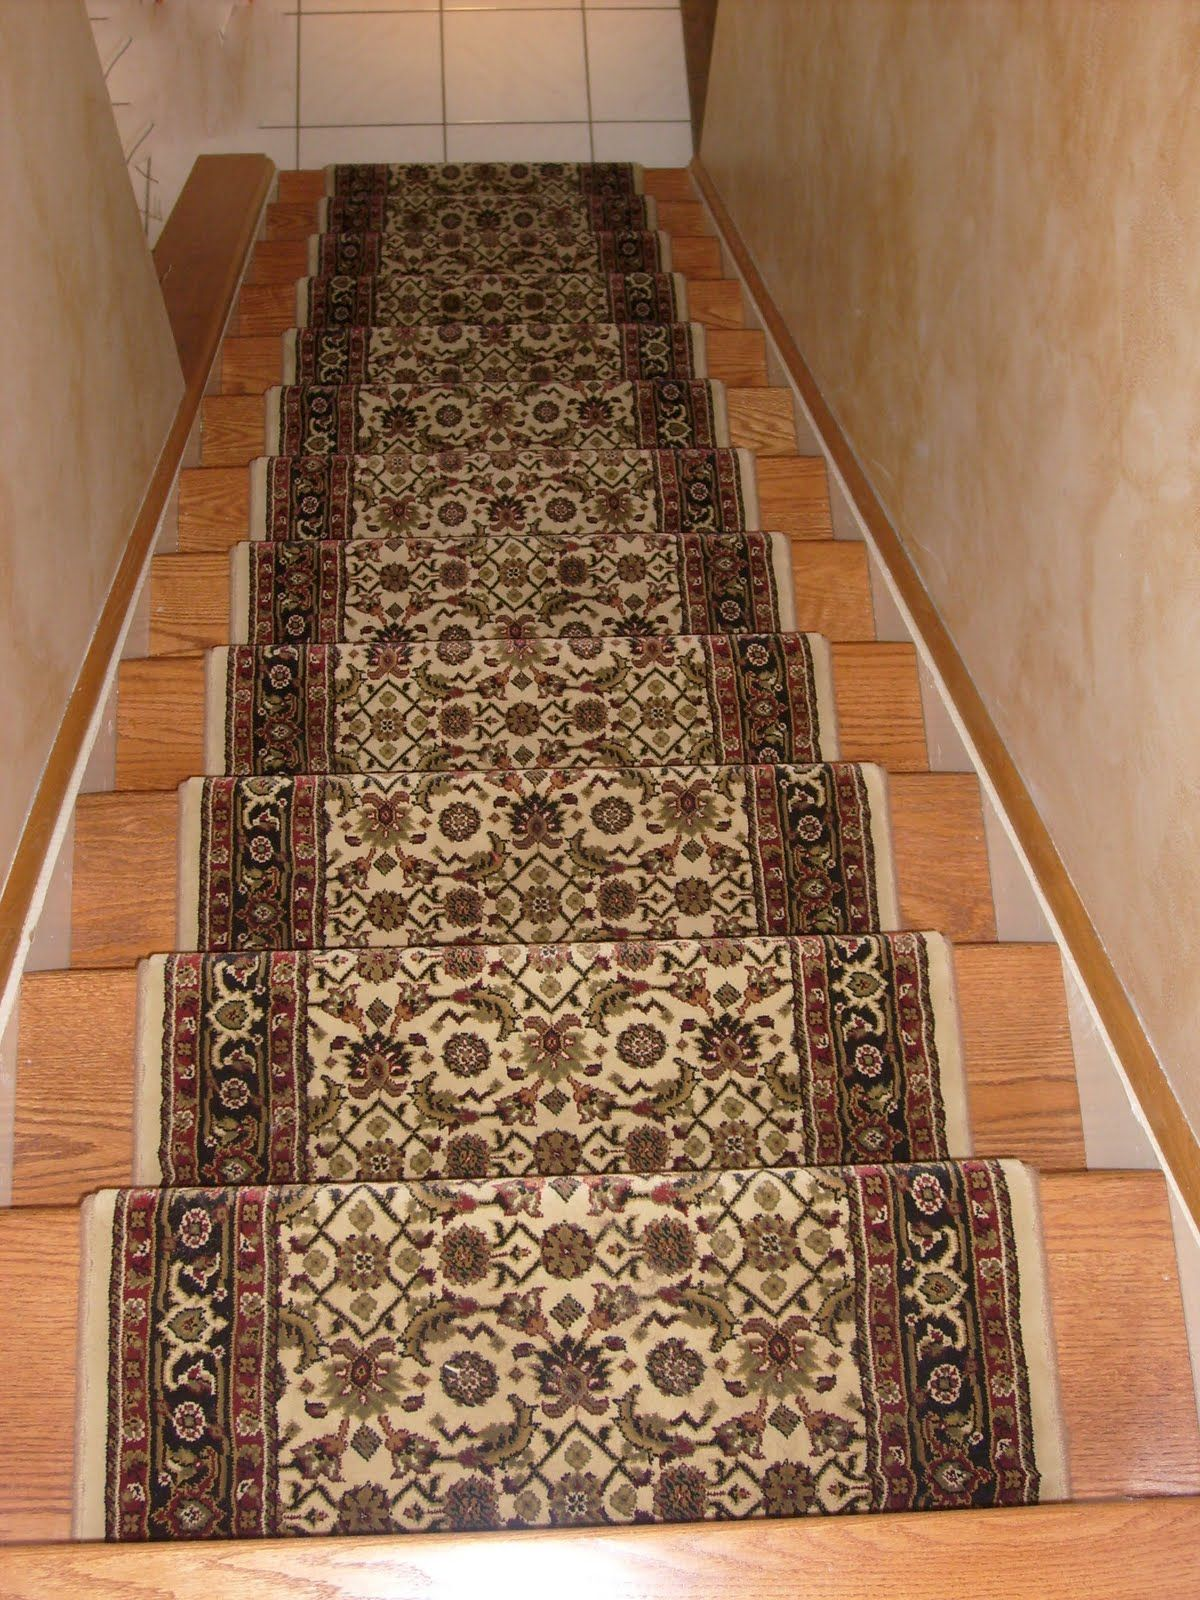 Designer Oriental Fl Carpet Runner For Stairs On Wooden Foot